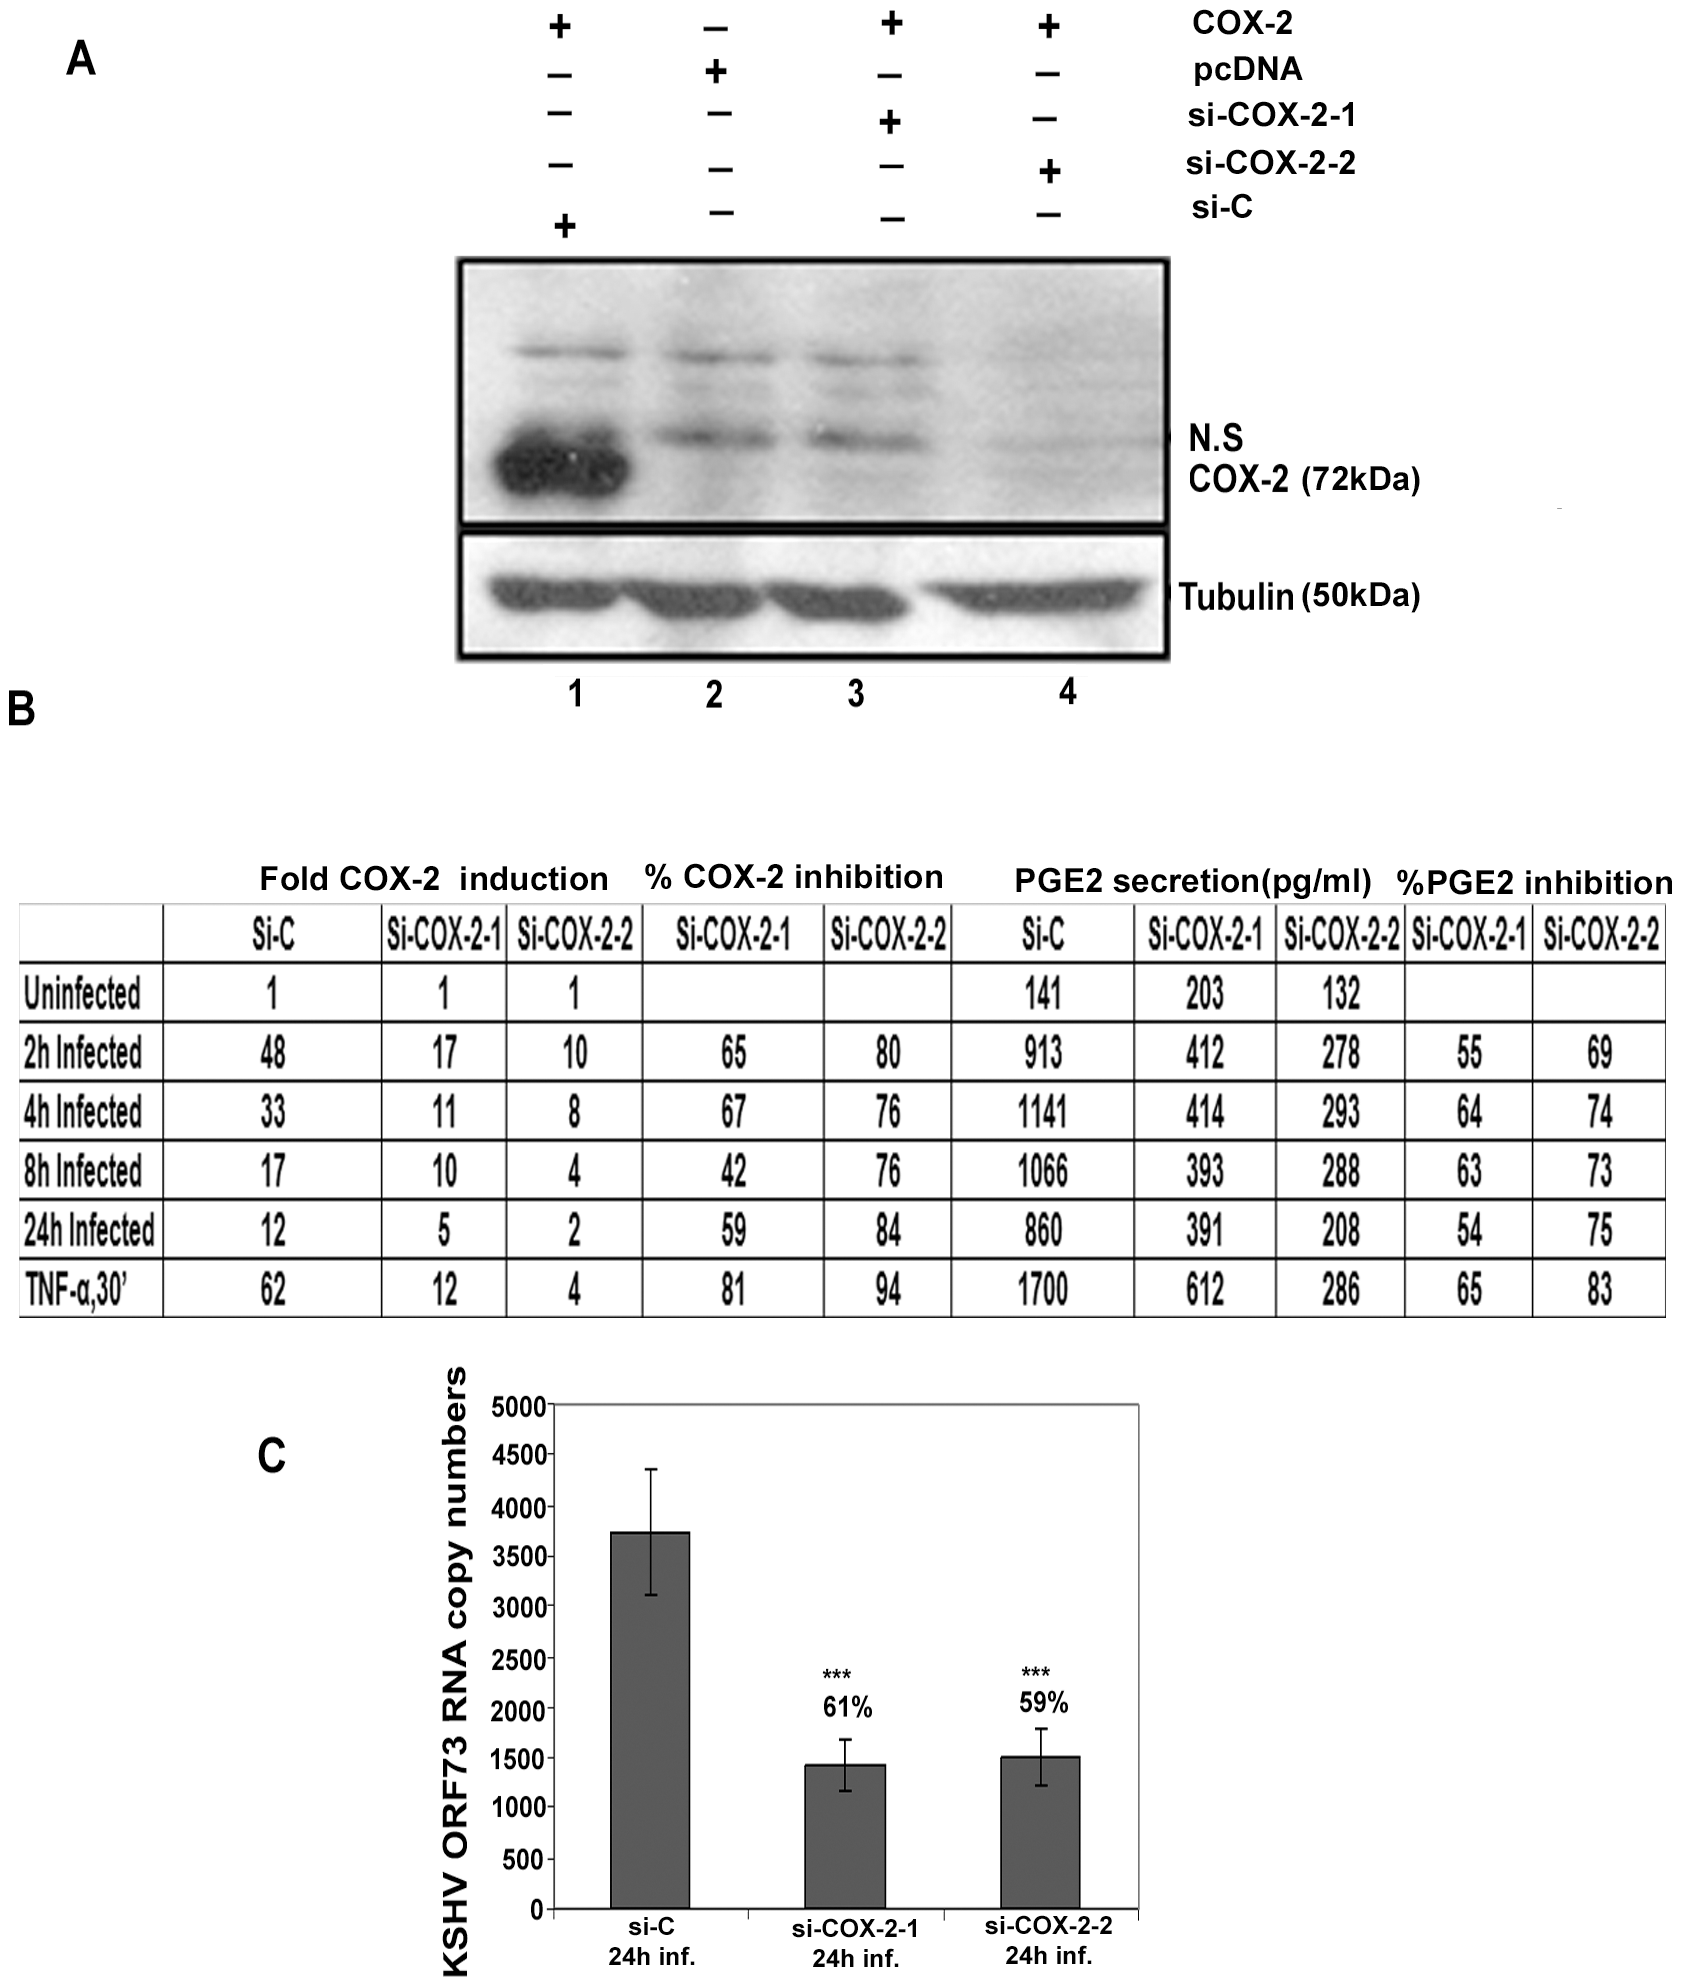 Evaluation of COX-2 siRNA for silencing COX-2.